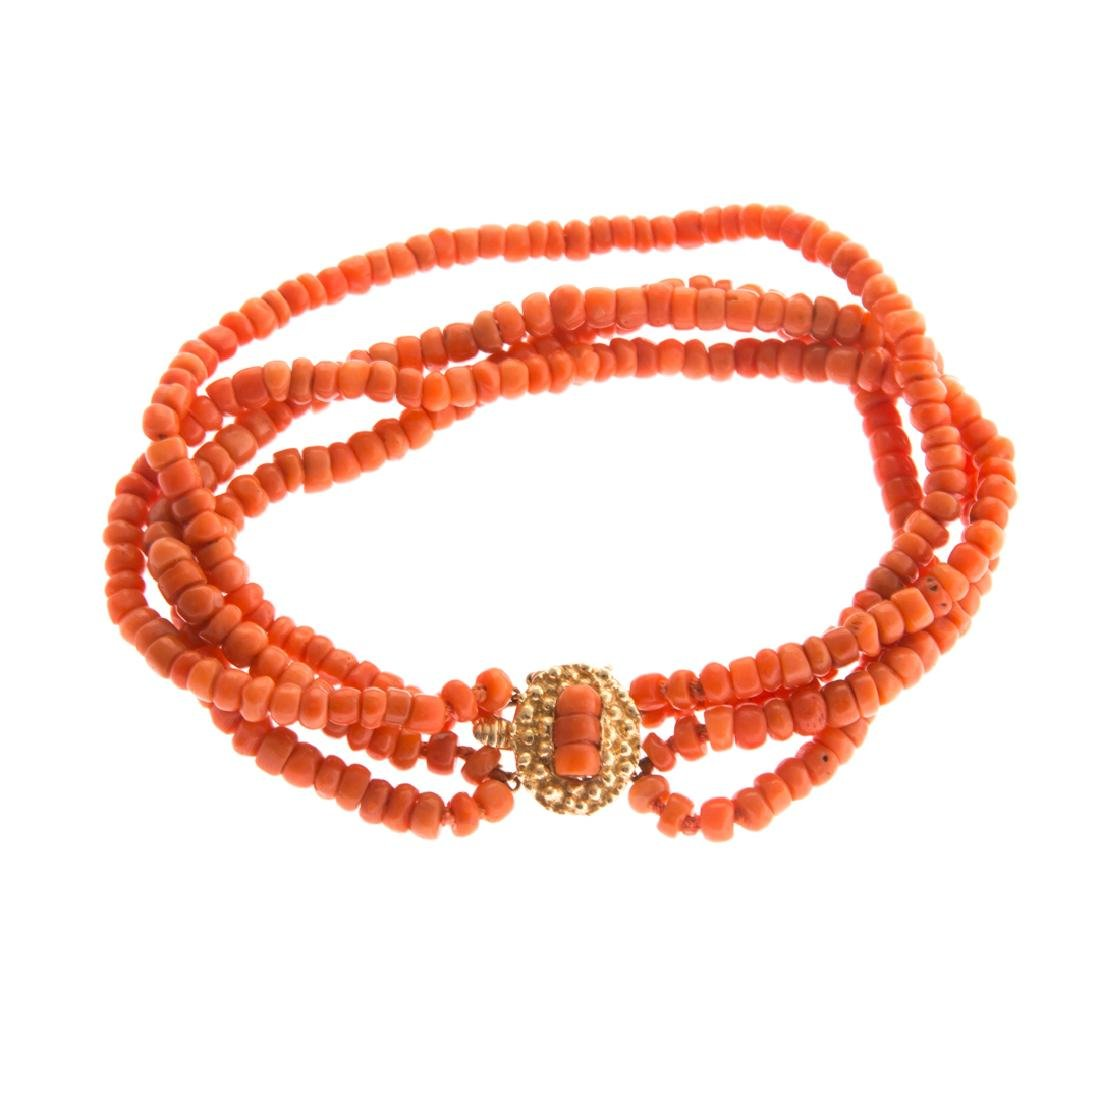 A Lady's Four Strand Coral Bracelet & Gold Clasp